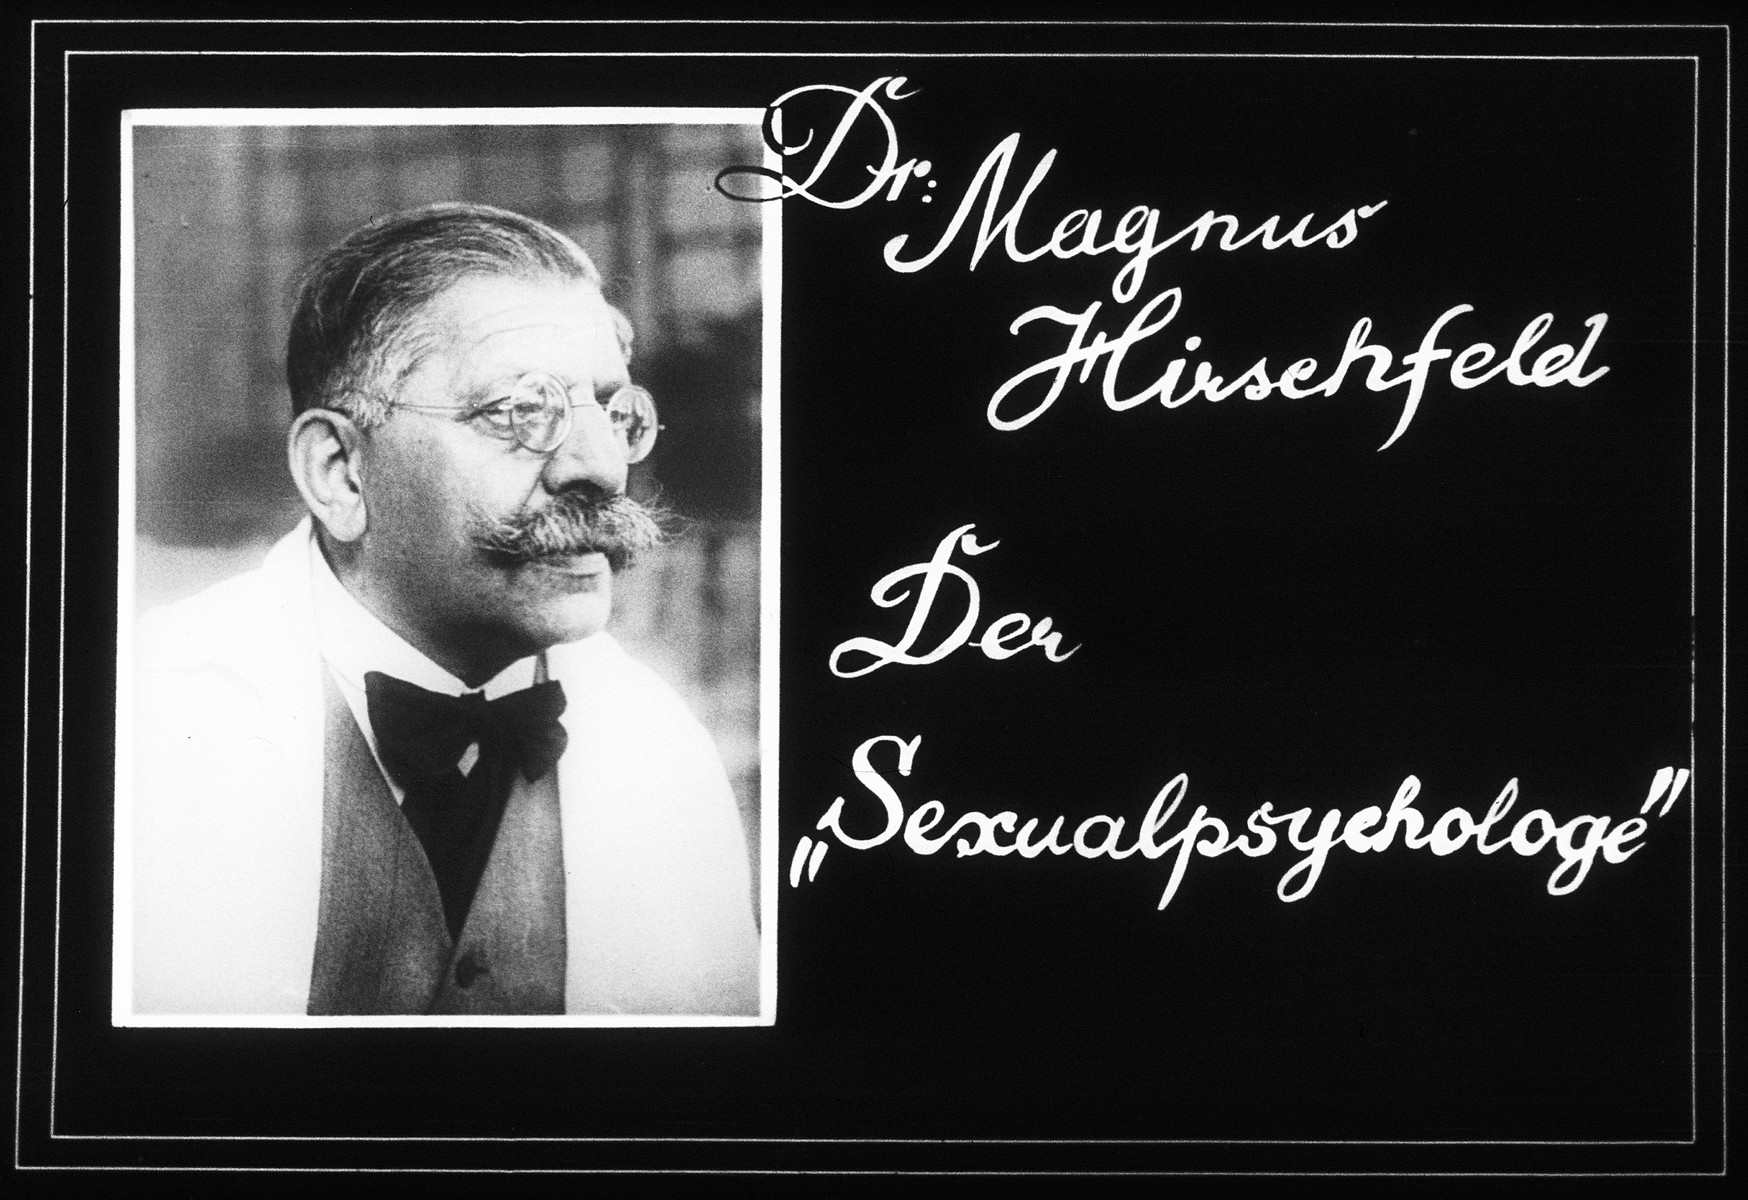 Propaganda slide showing Dr. Magnus Hirschfeld, founder of the Institute for Sexual Research in Berlin.